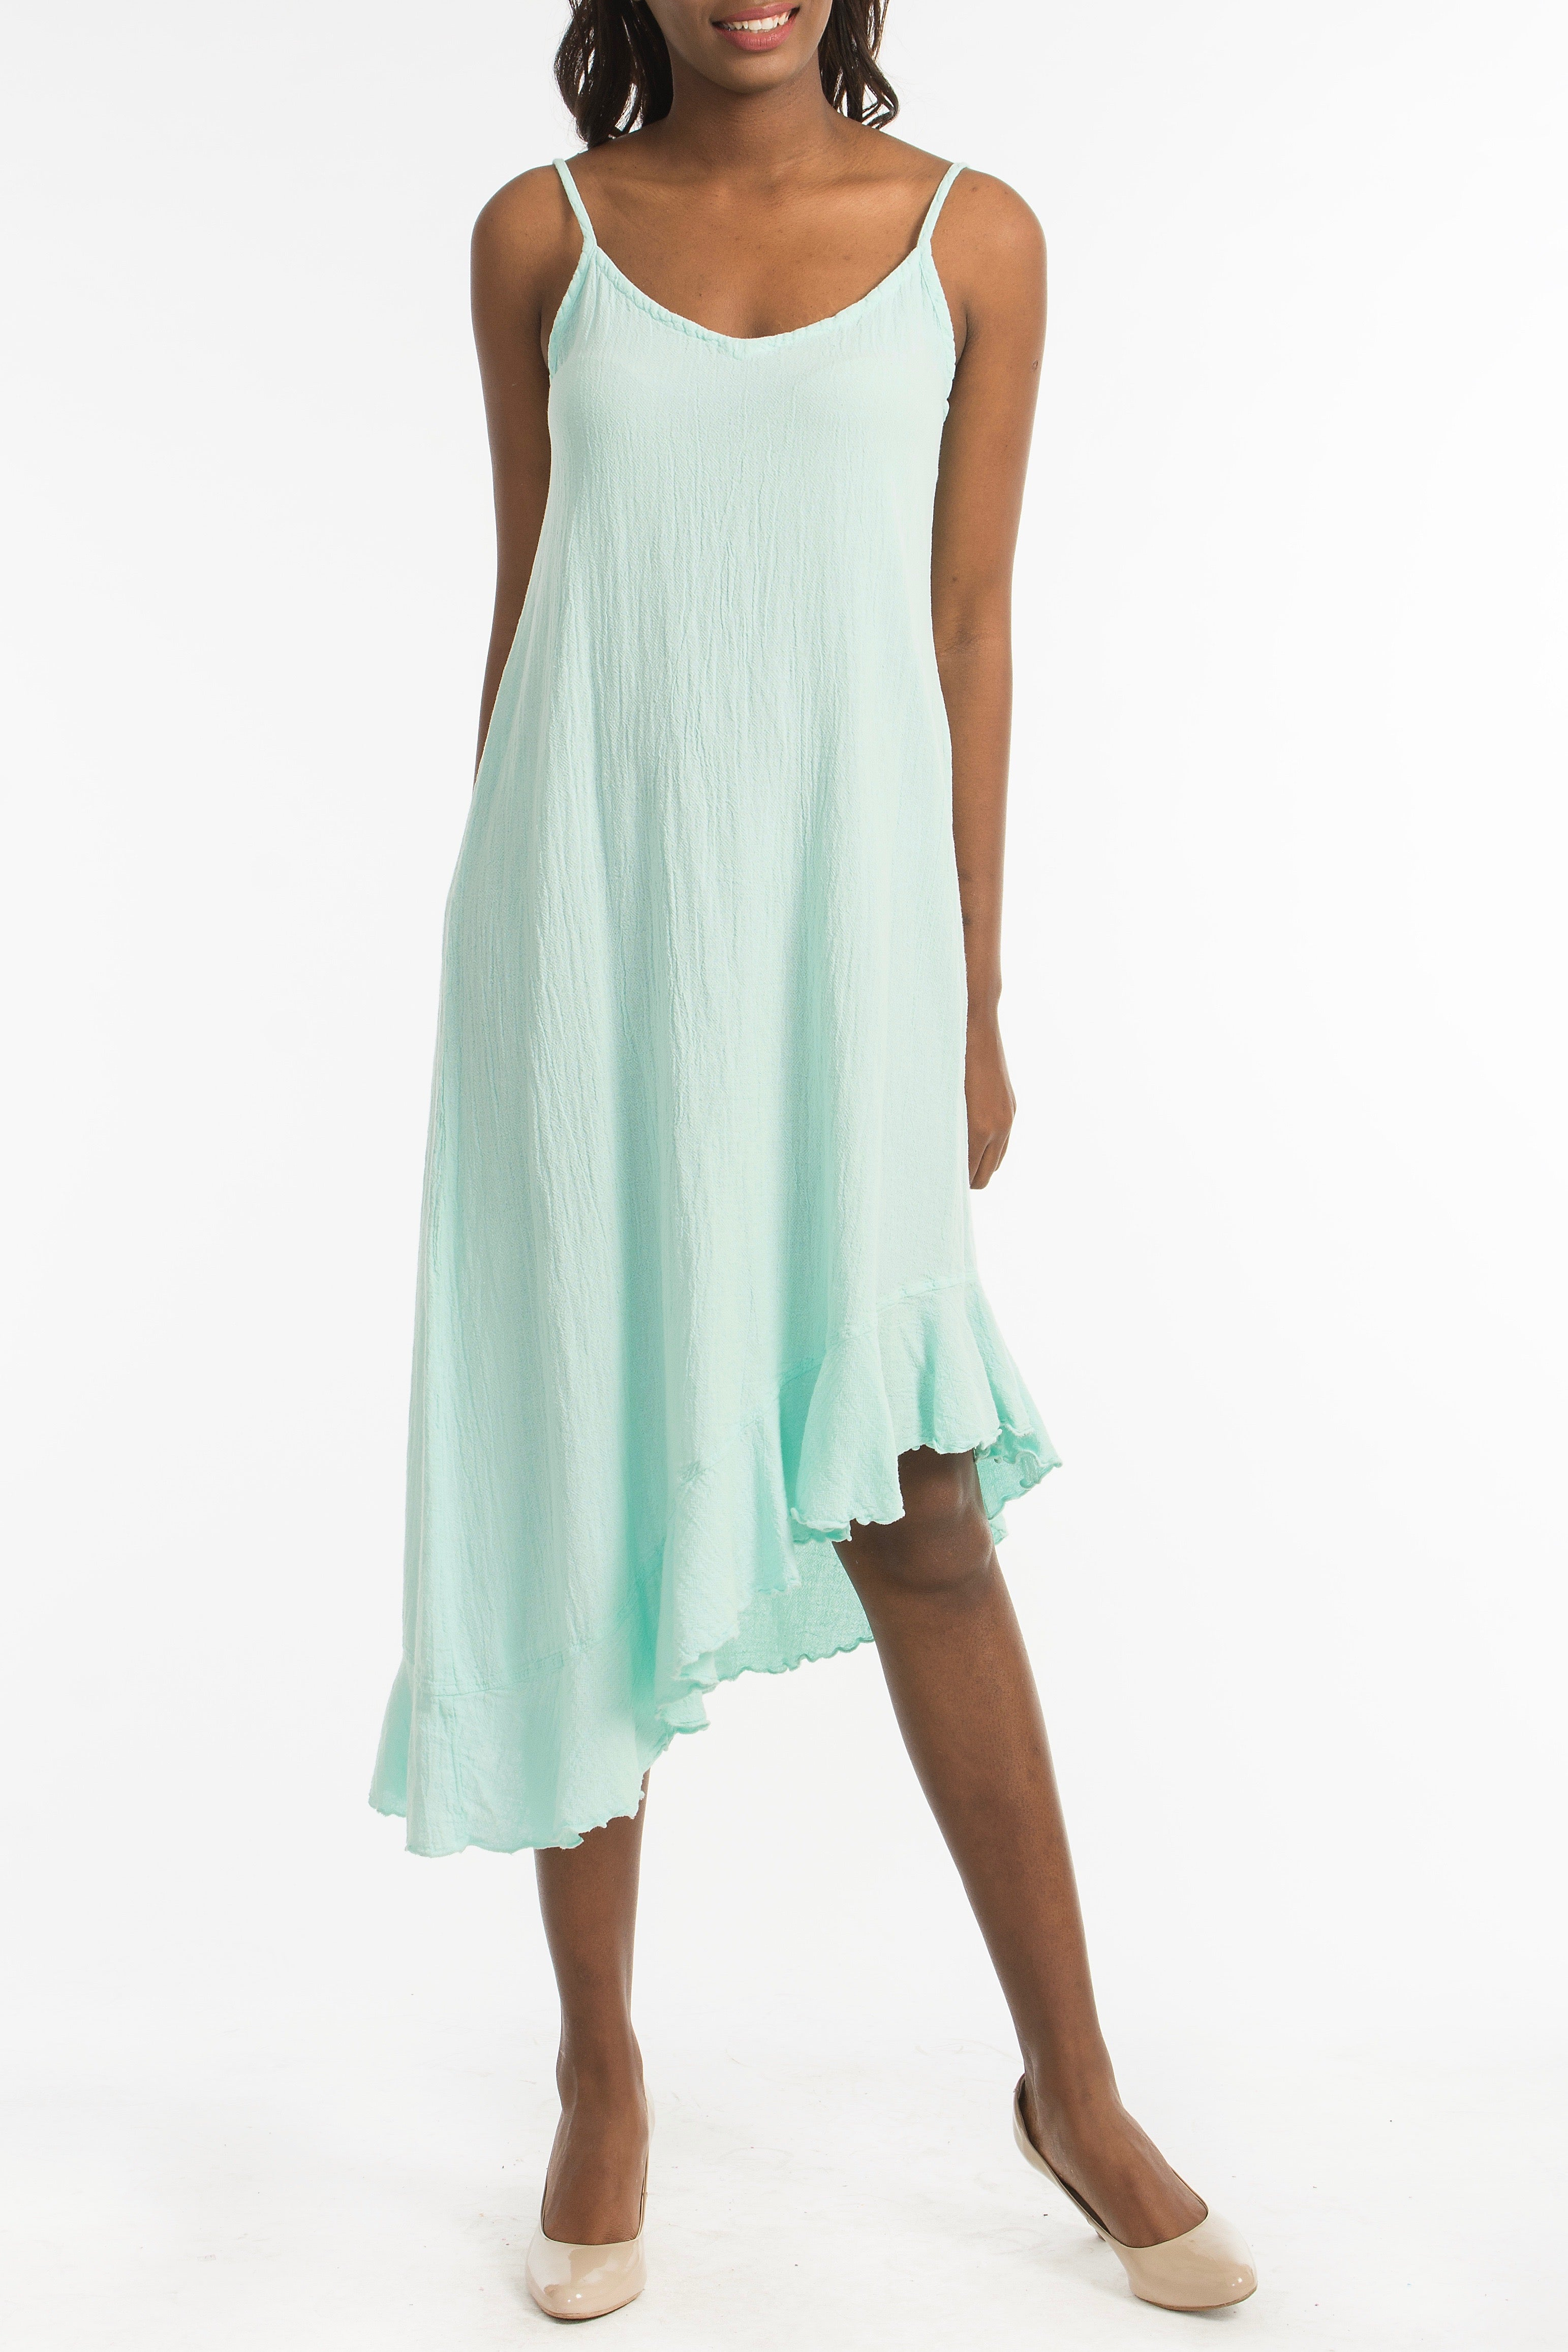 Aria Dress Breezy Cotton Favorite